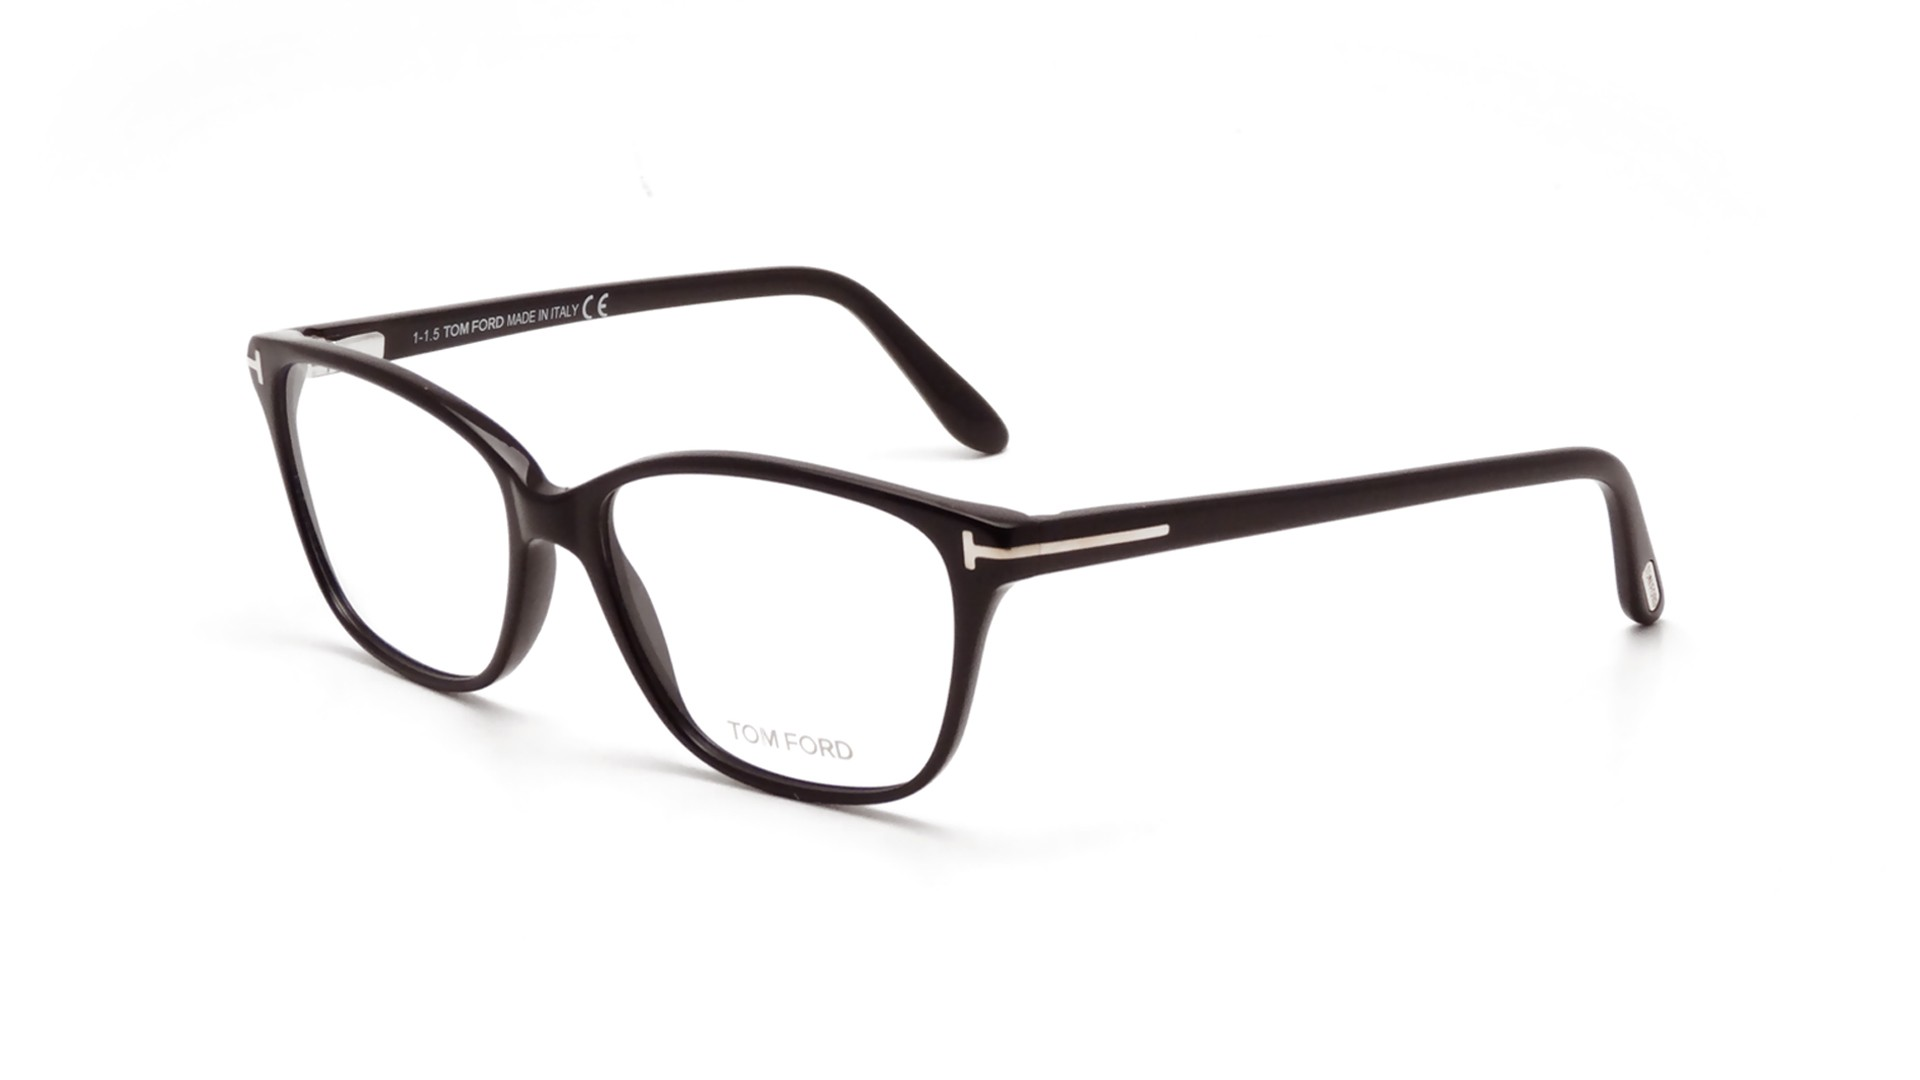 Tom Ford FT5293 001 54-15 Noir   Prix 112,63 €   Visiofactory 1379ba24dde1